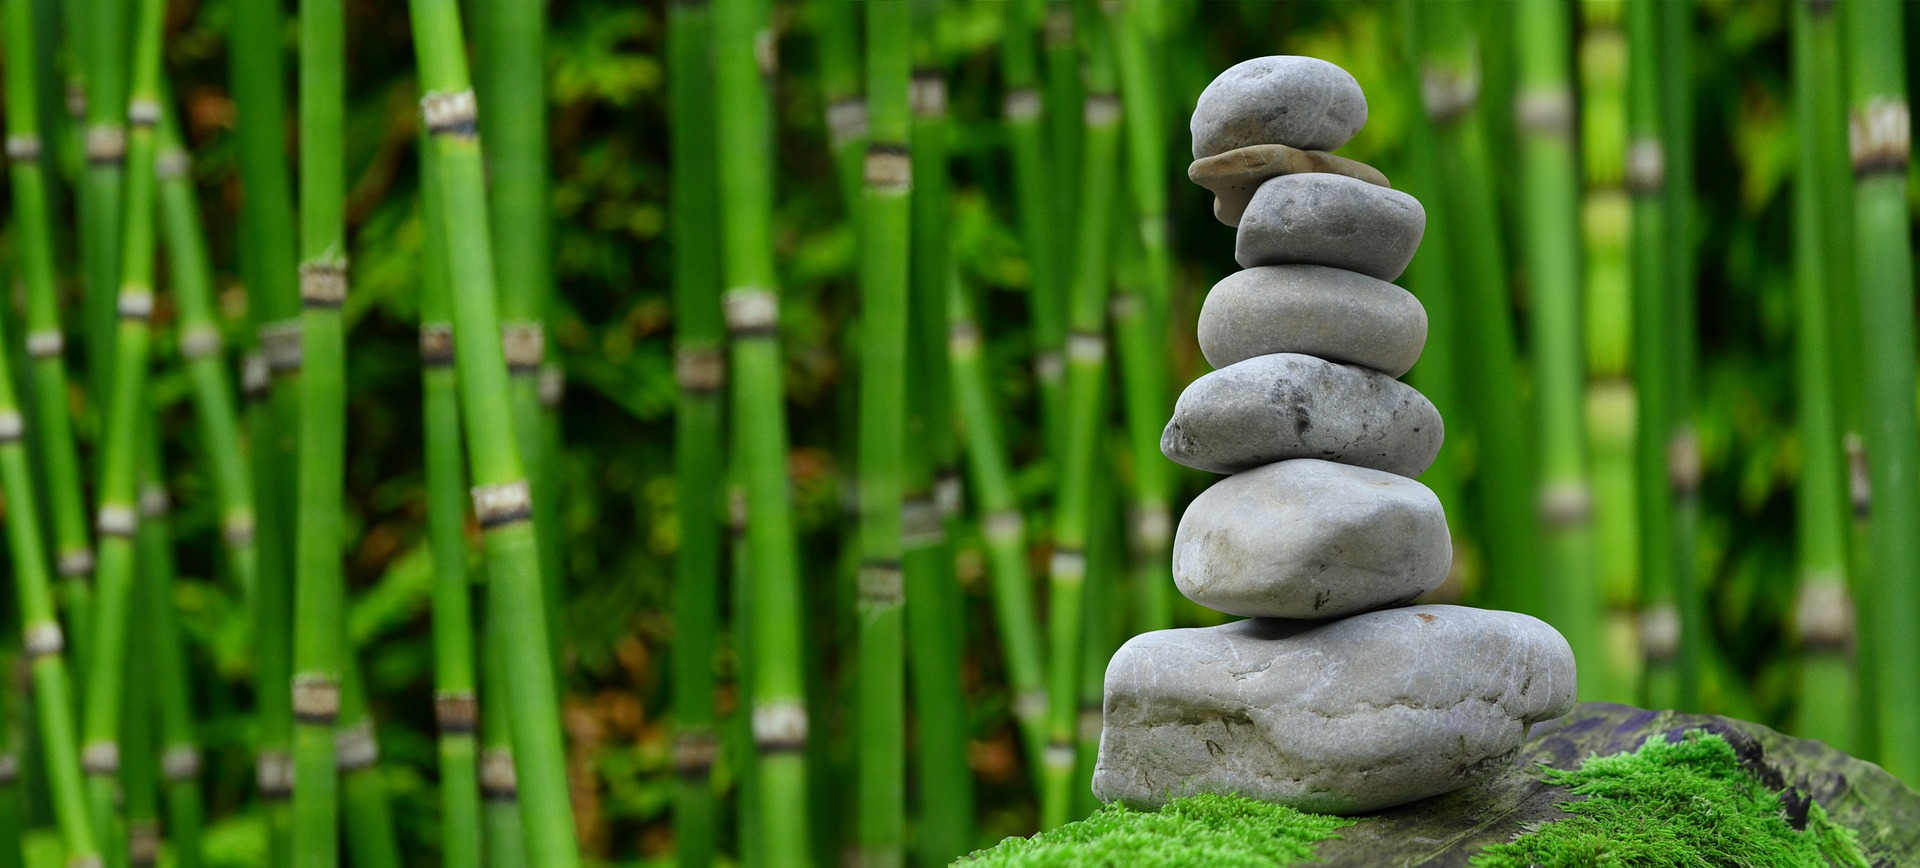 zen stone meditation bamboo forest wellness being well thrive personally